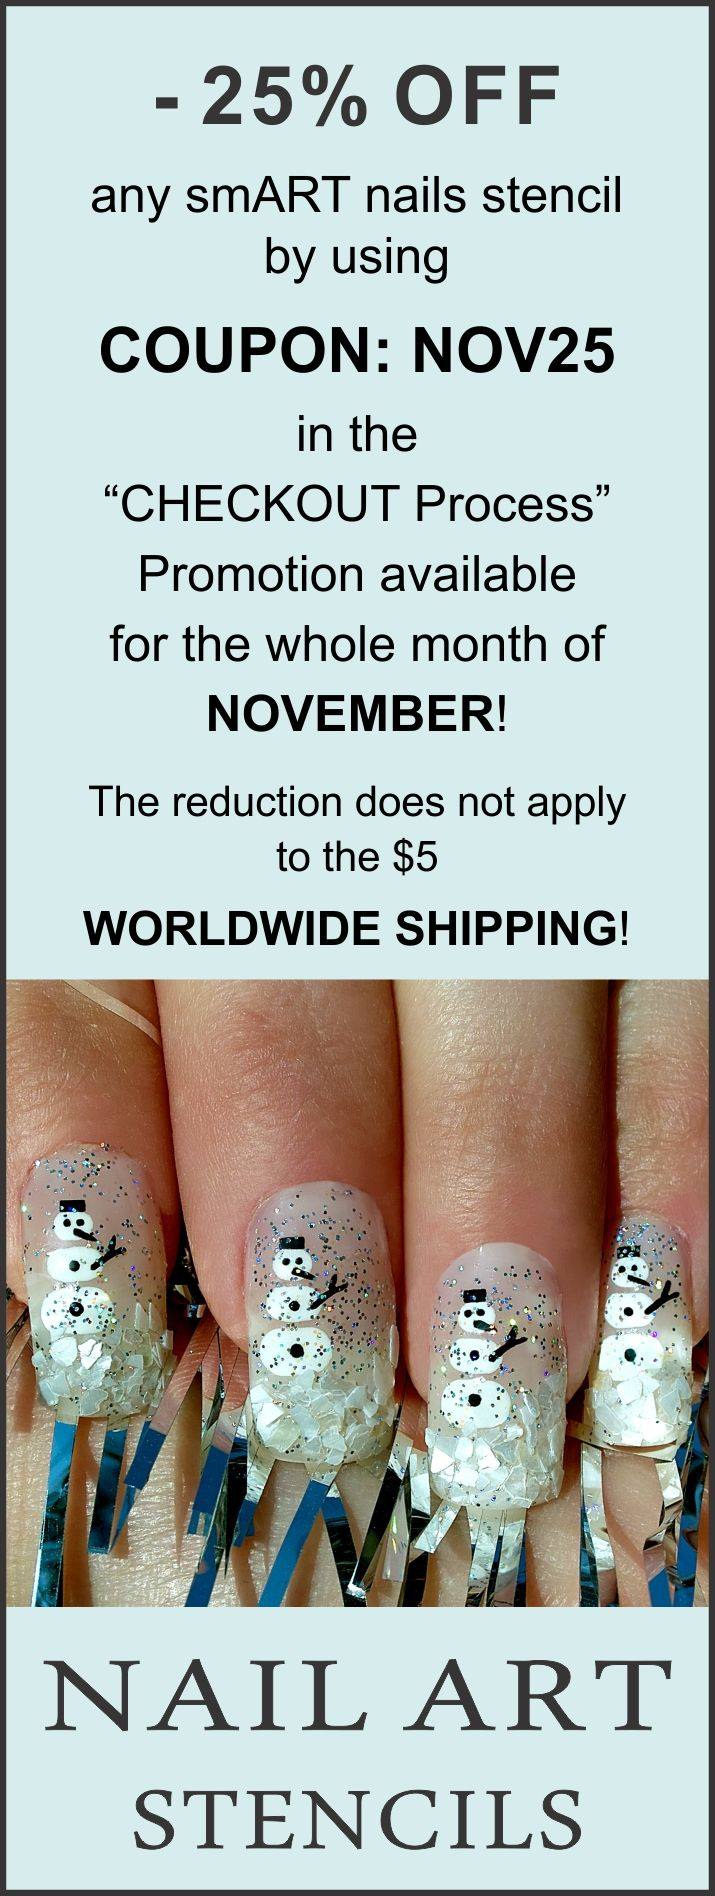 SPECIAL OFFER from http://www.smart-nails.com/shop-online -25% OFF ...